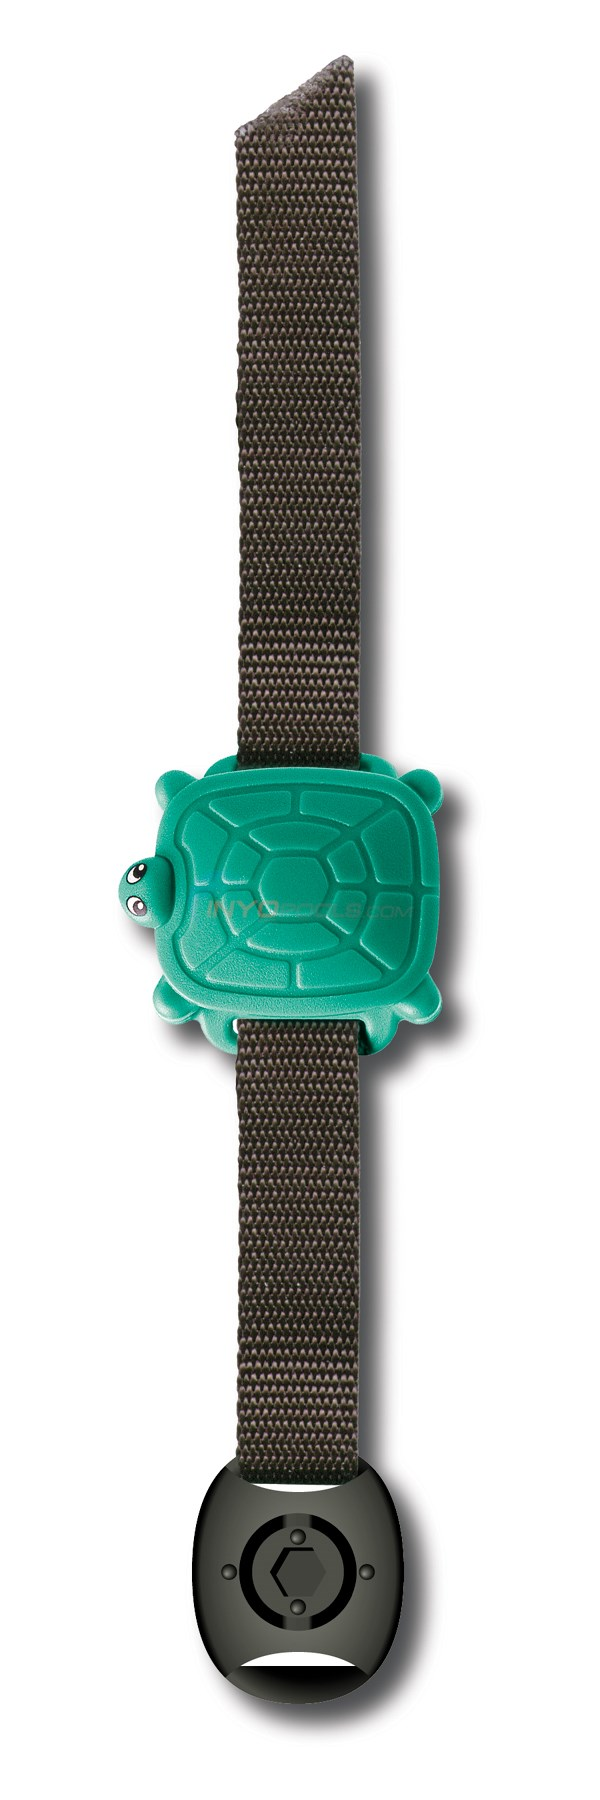 Terripan Safety Turtle Base Station w/ Green Wristband - Clearance - NA450